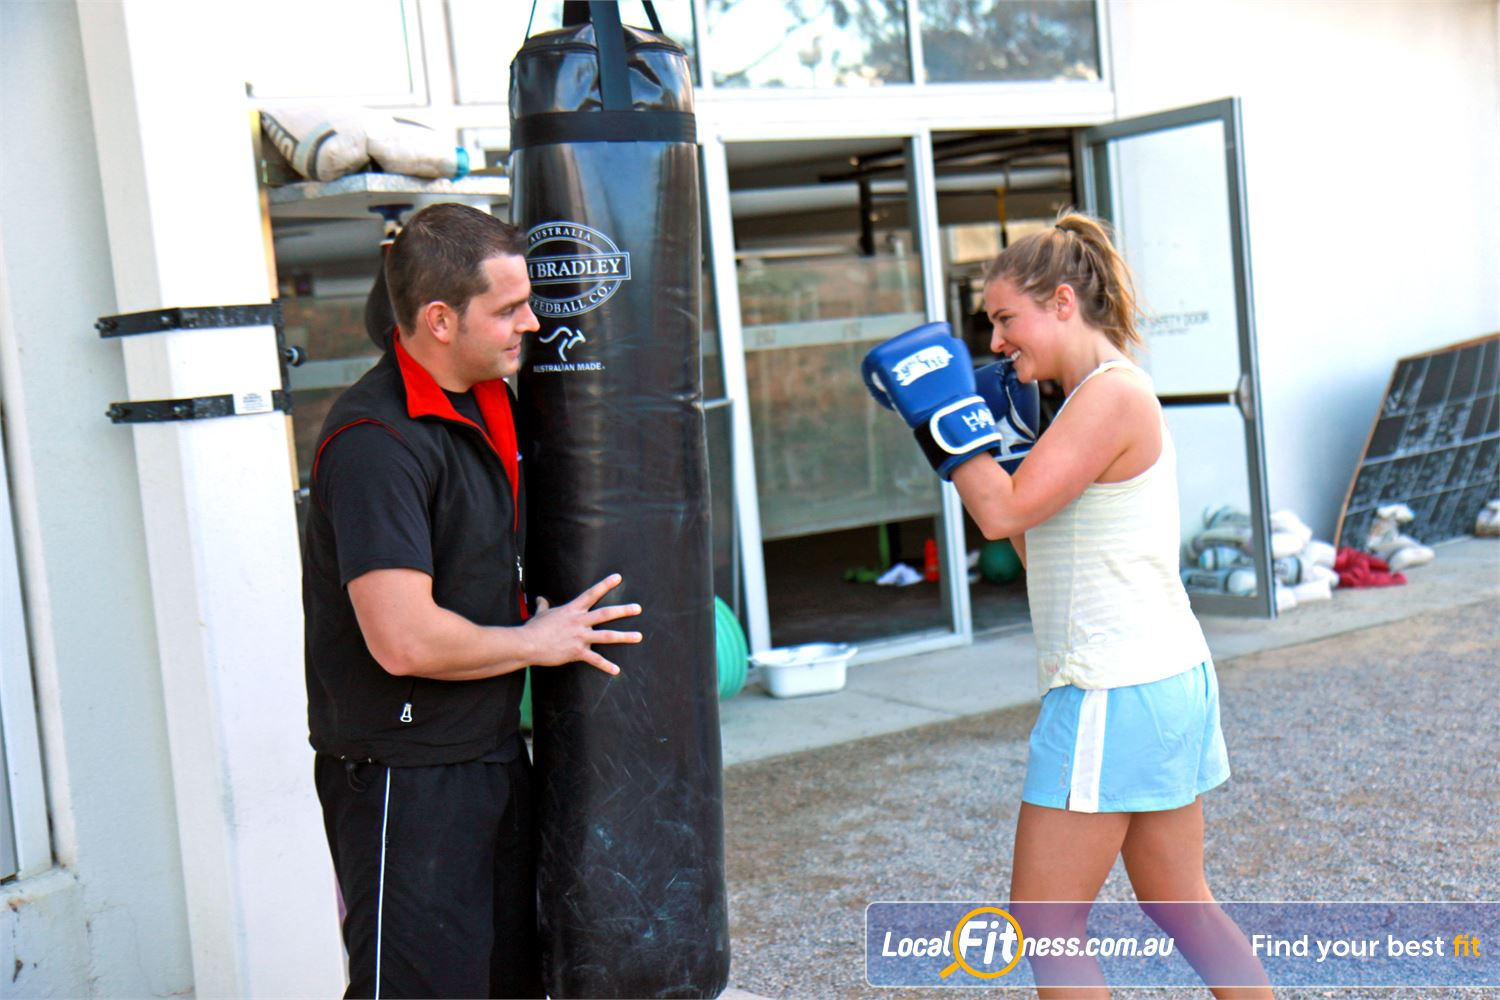 Ascot Vale Leisure Centre Near Moonee Ponds Outdoor boot camp and crossfit training environment in Ascot Vale.